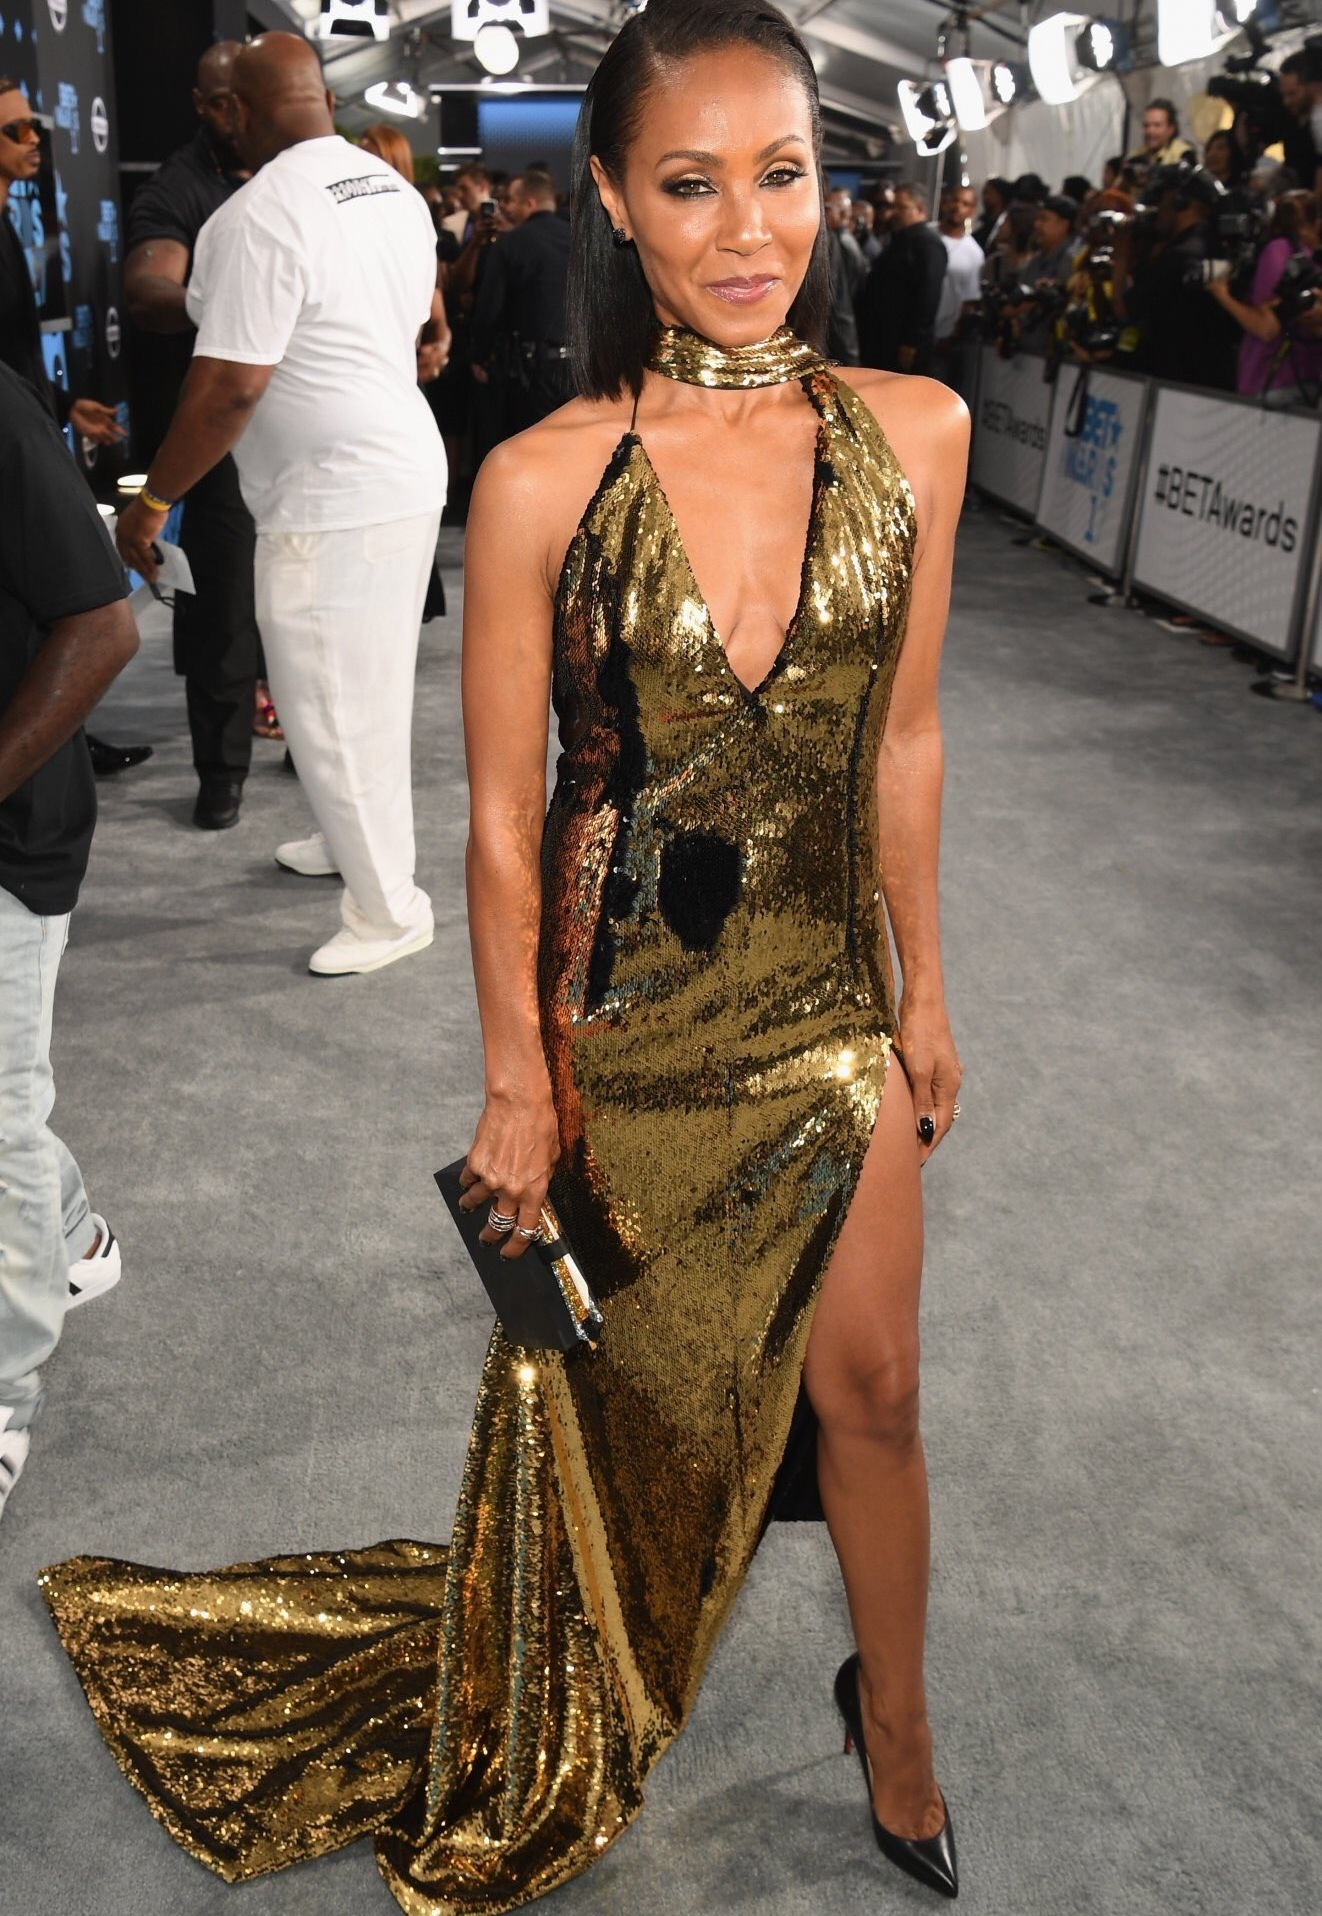 Jada Pinkett Smith, showcased her spectacular body in a golden sequin number.